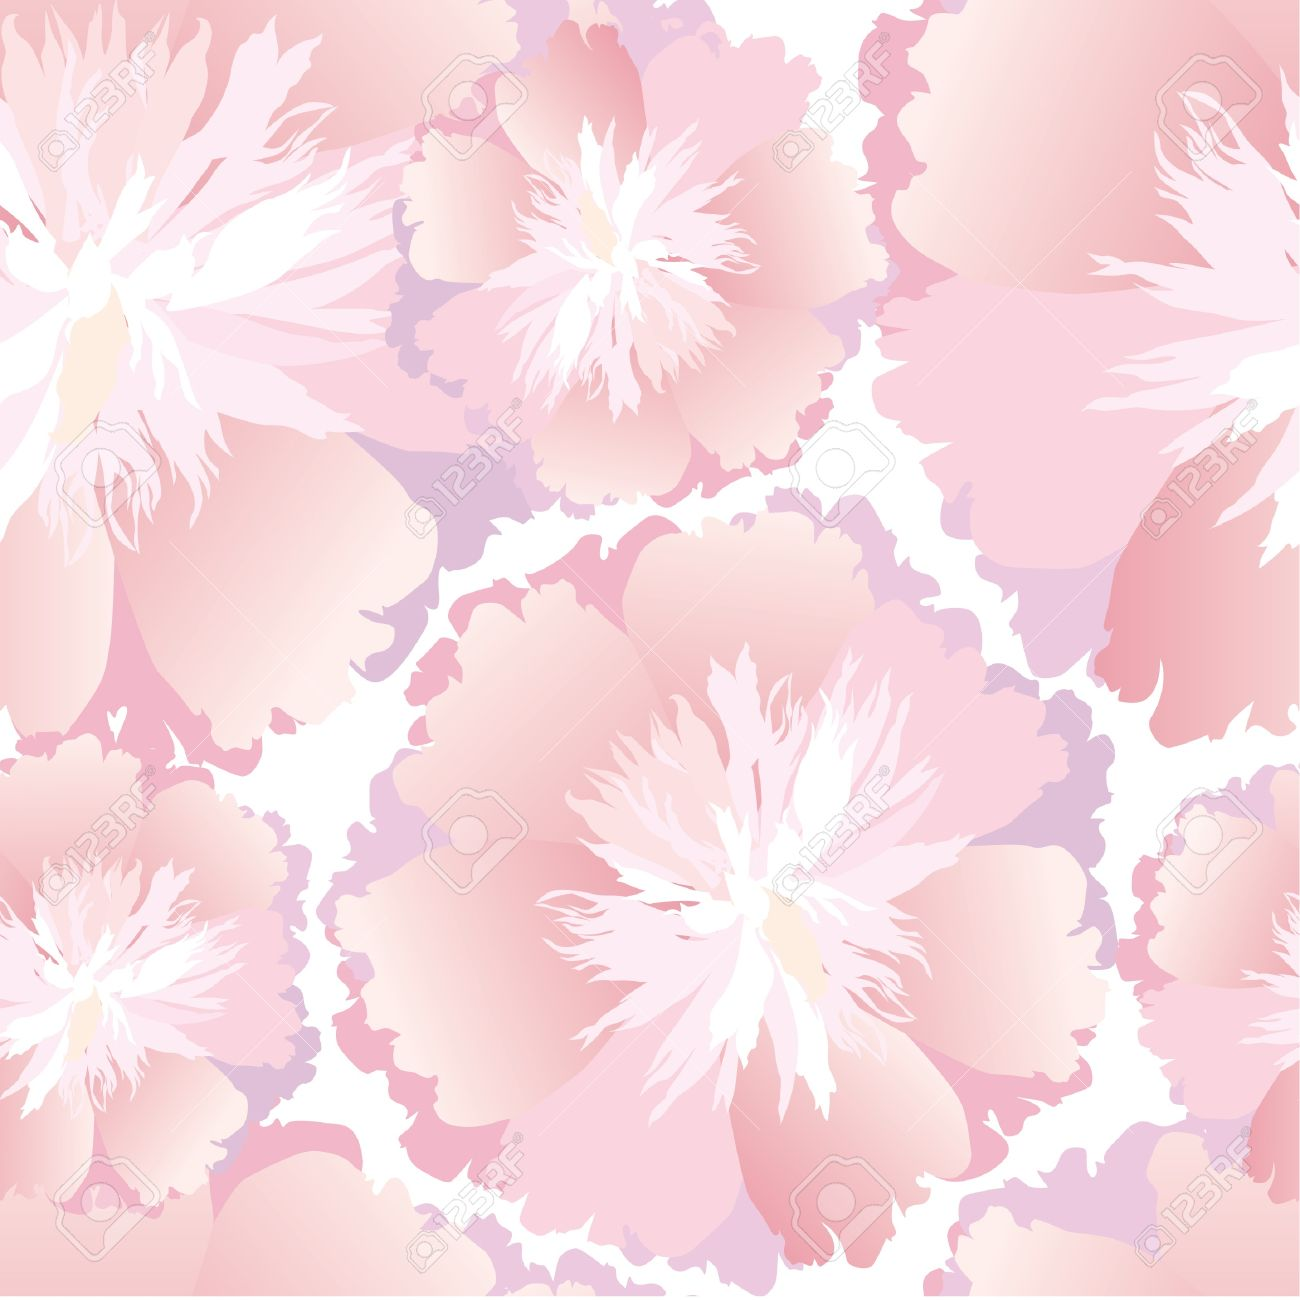 Floral Seamless Pattern White And Pink Flower Background Royalty